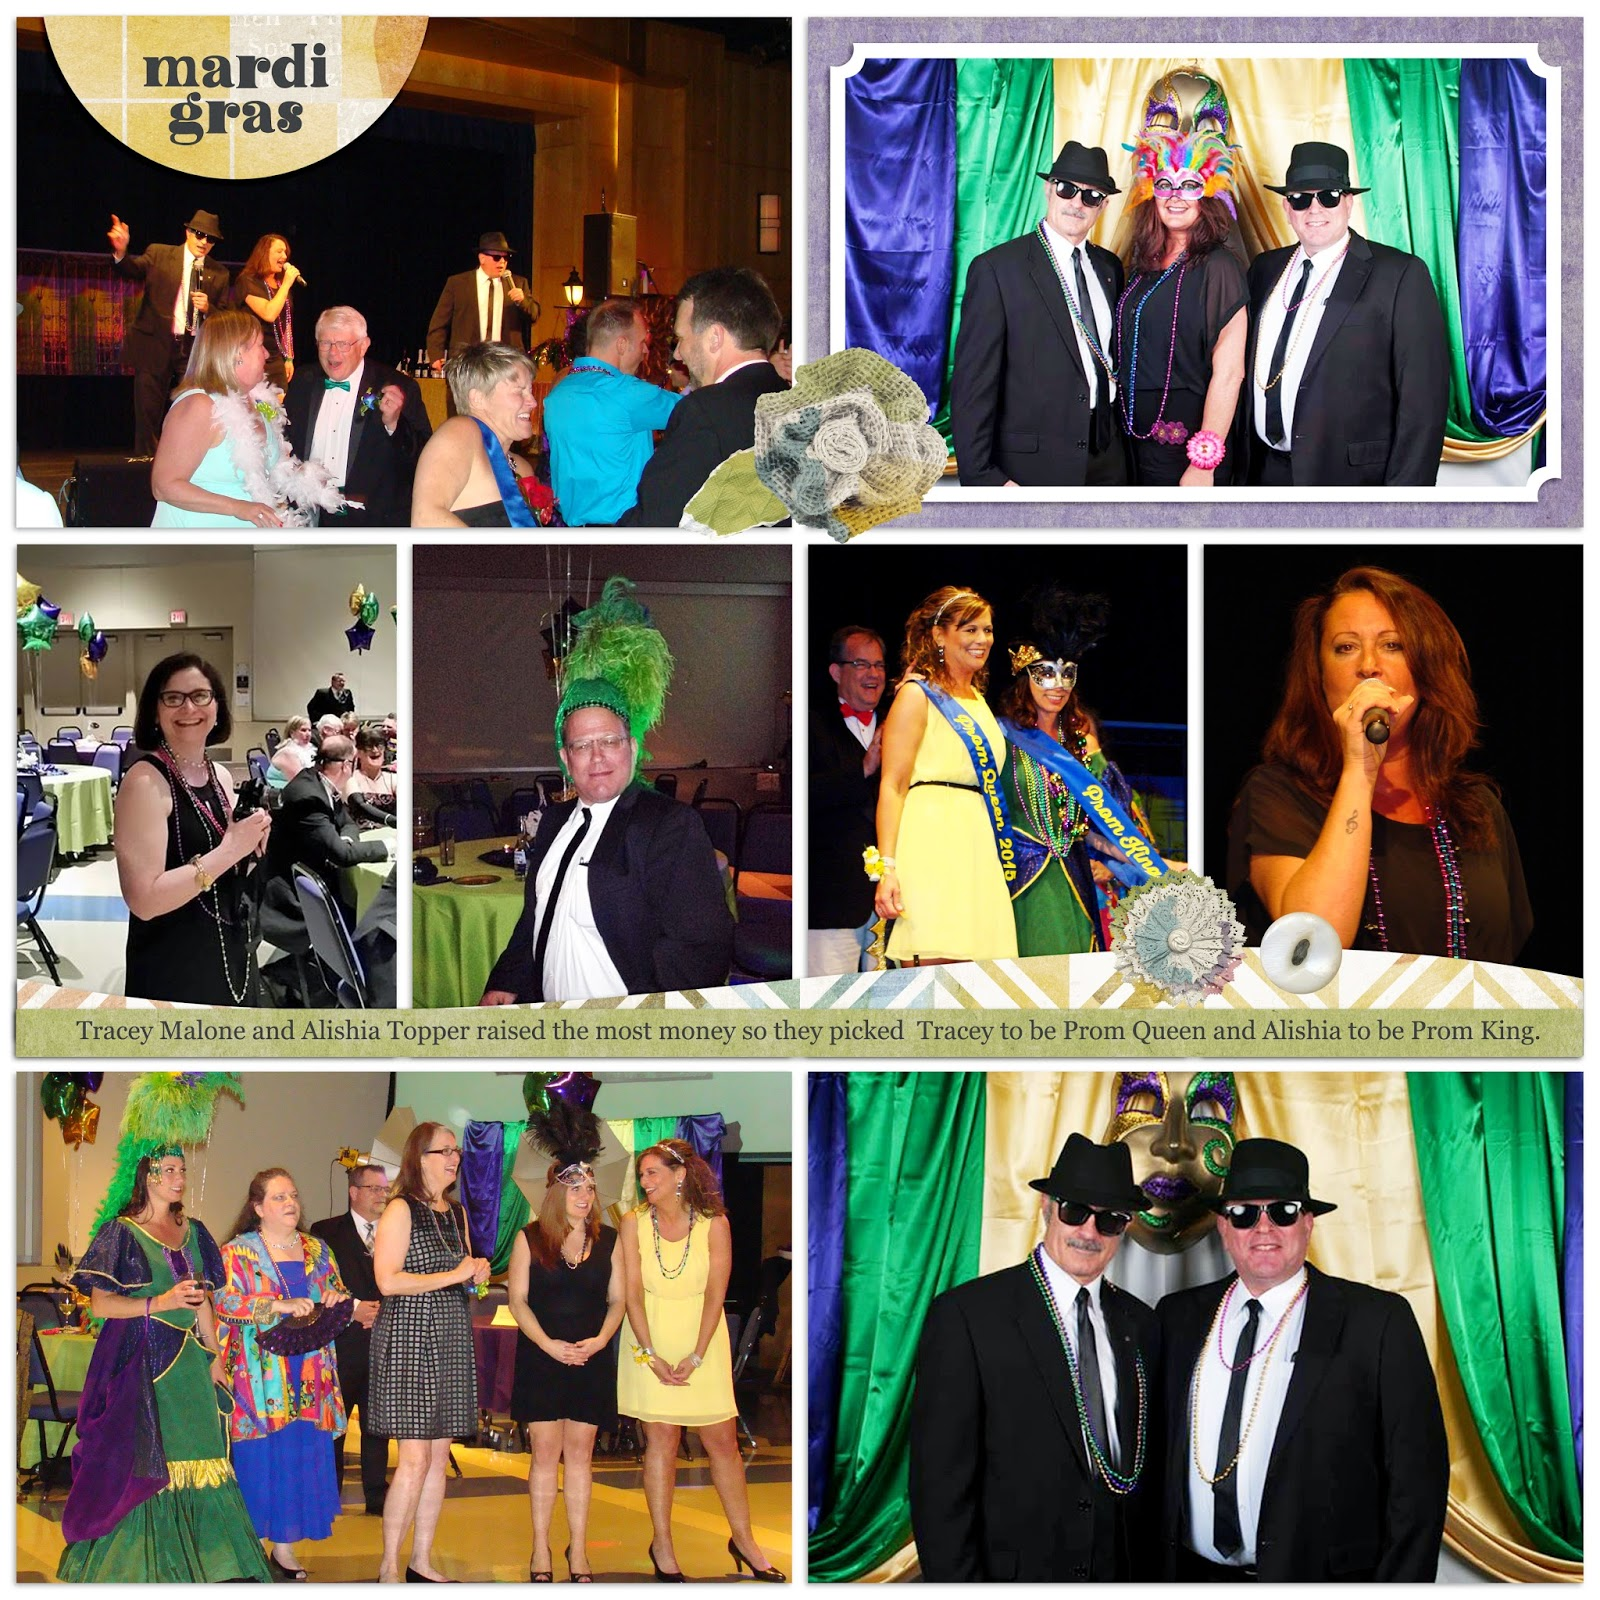 bdb086255c7 ... a Mardi Gras theme. Bill and Jim serenaded the queen candidates with